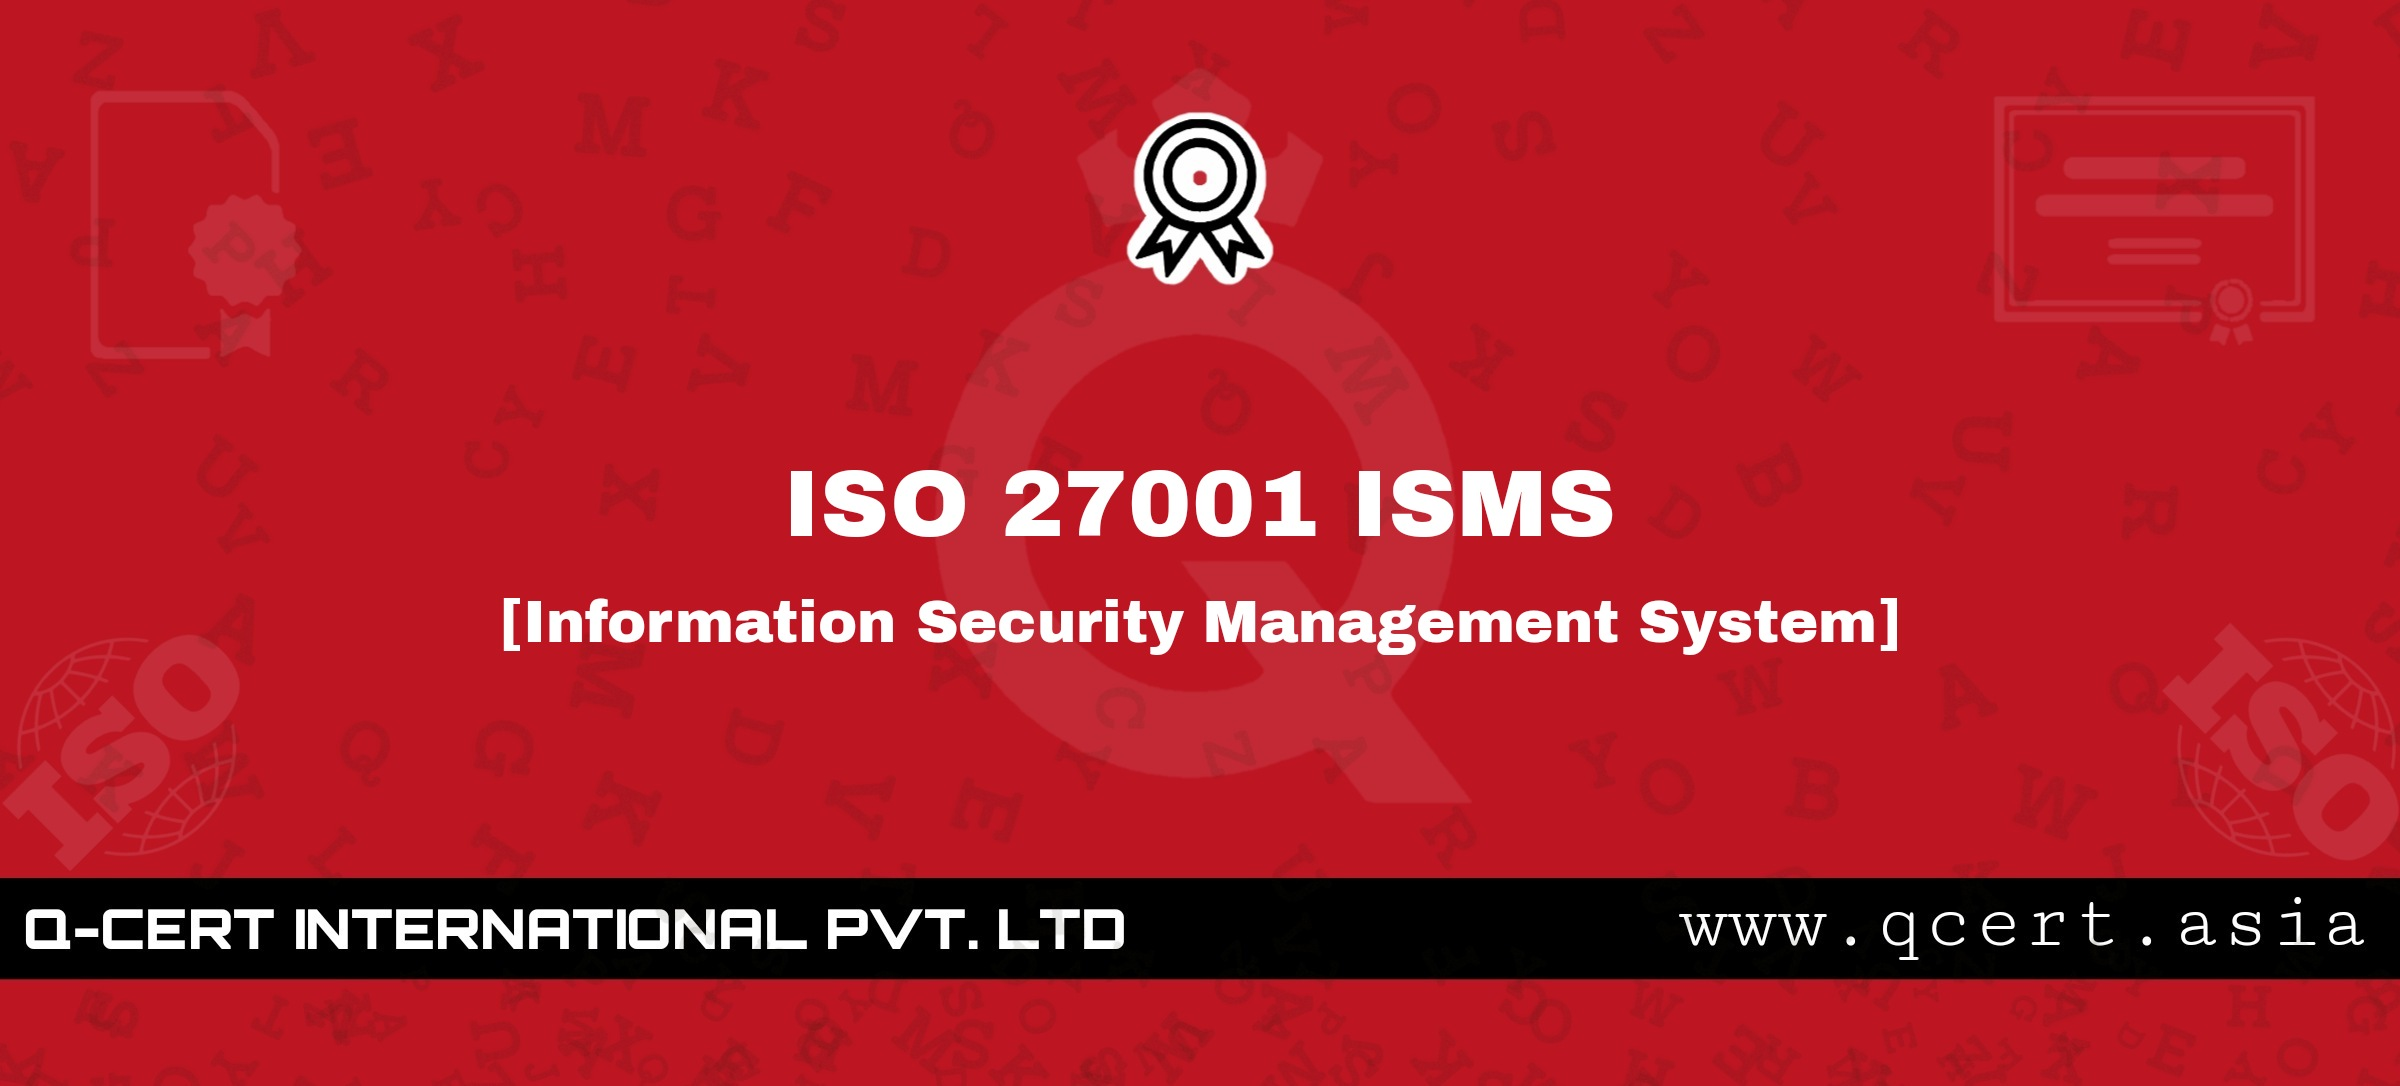 iso-27001-isms-information-security-management-system-qcert-international